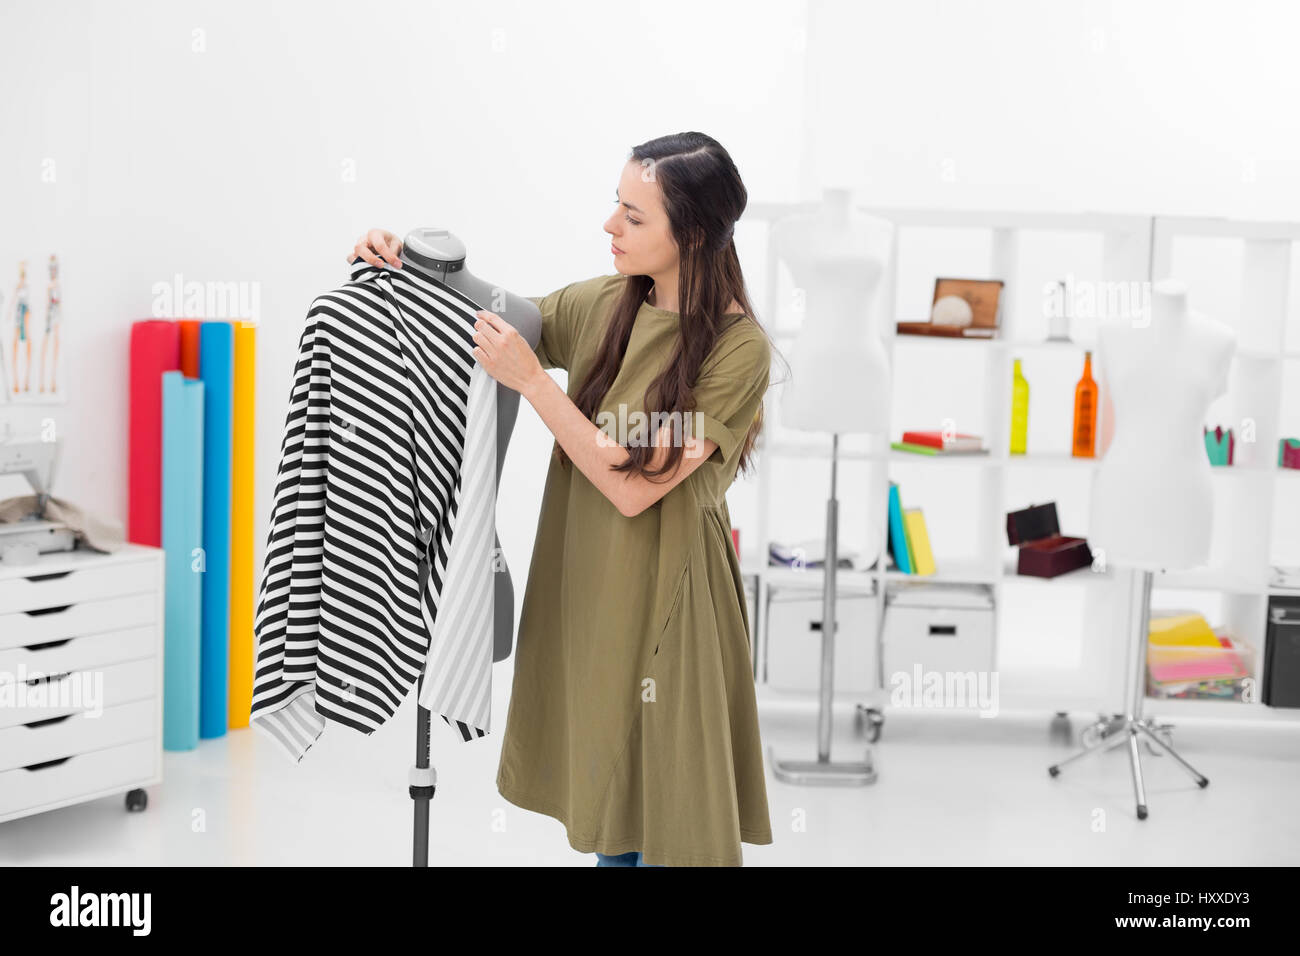 young fashion designer adjusting fabric on mannequin - Stock Image